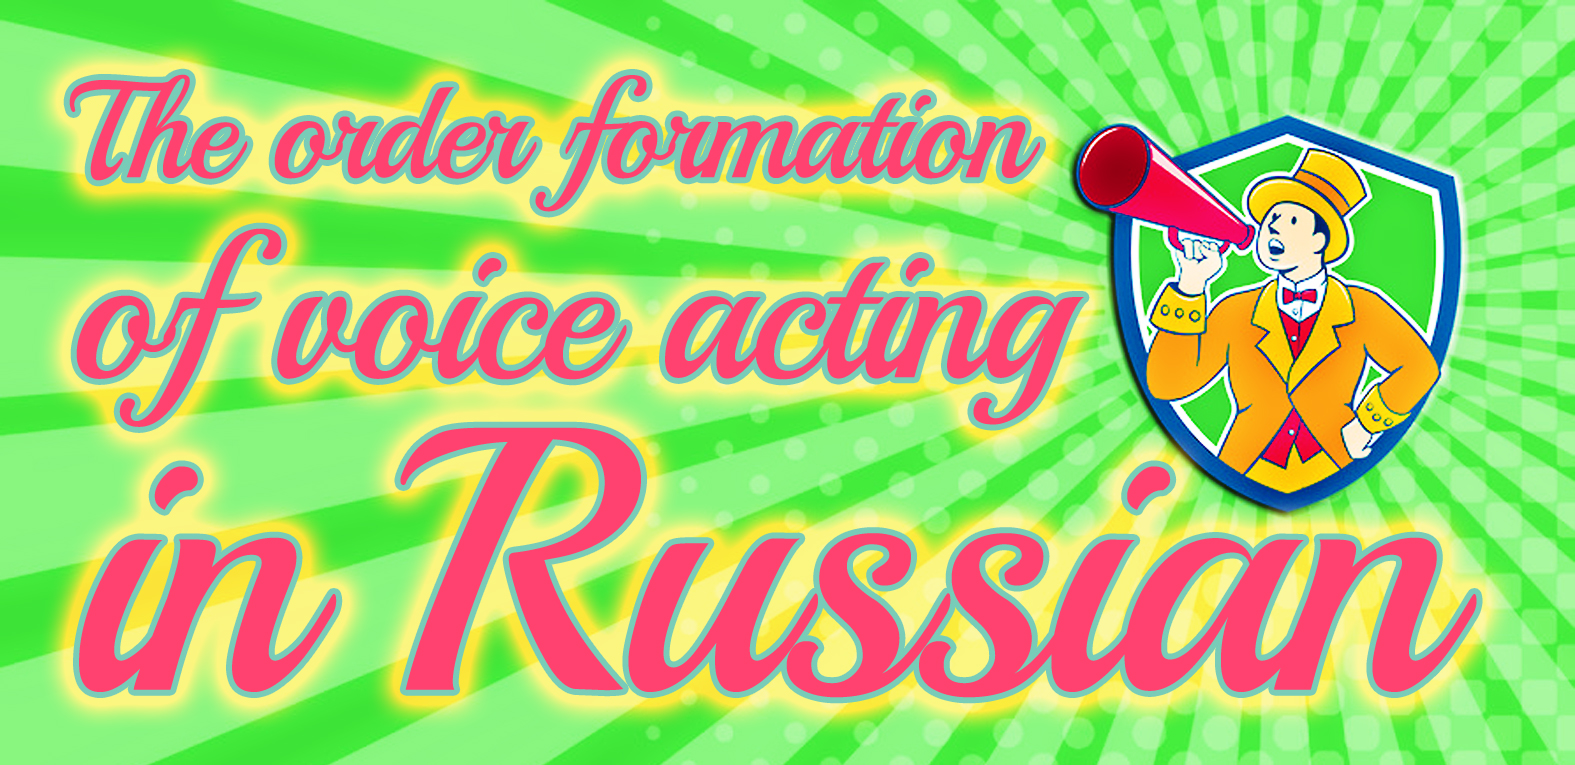 The order formation of voice acting in Russian